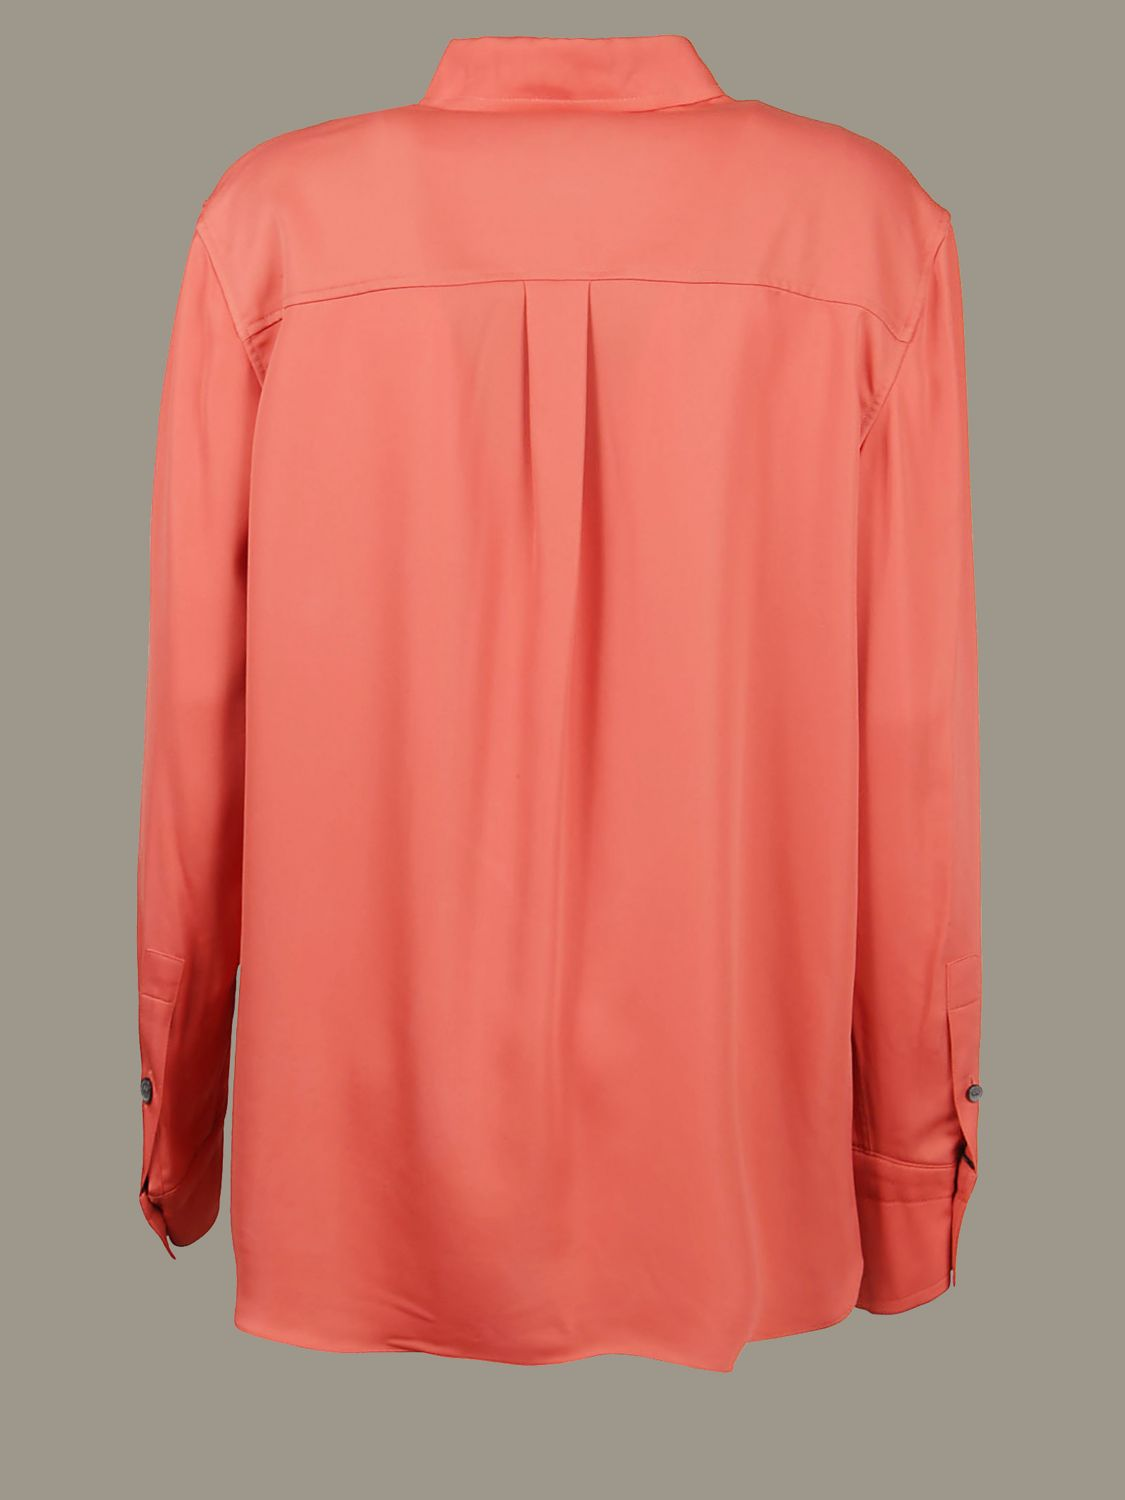 Shirt Calvin Klein: Shirt women Calvin Klein orange 2